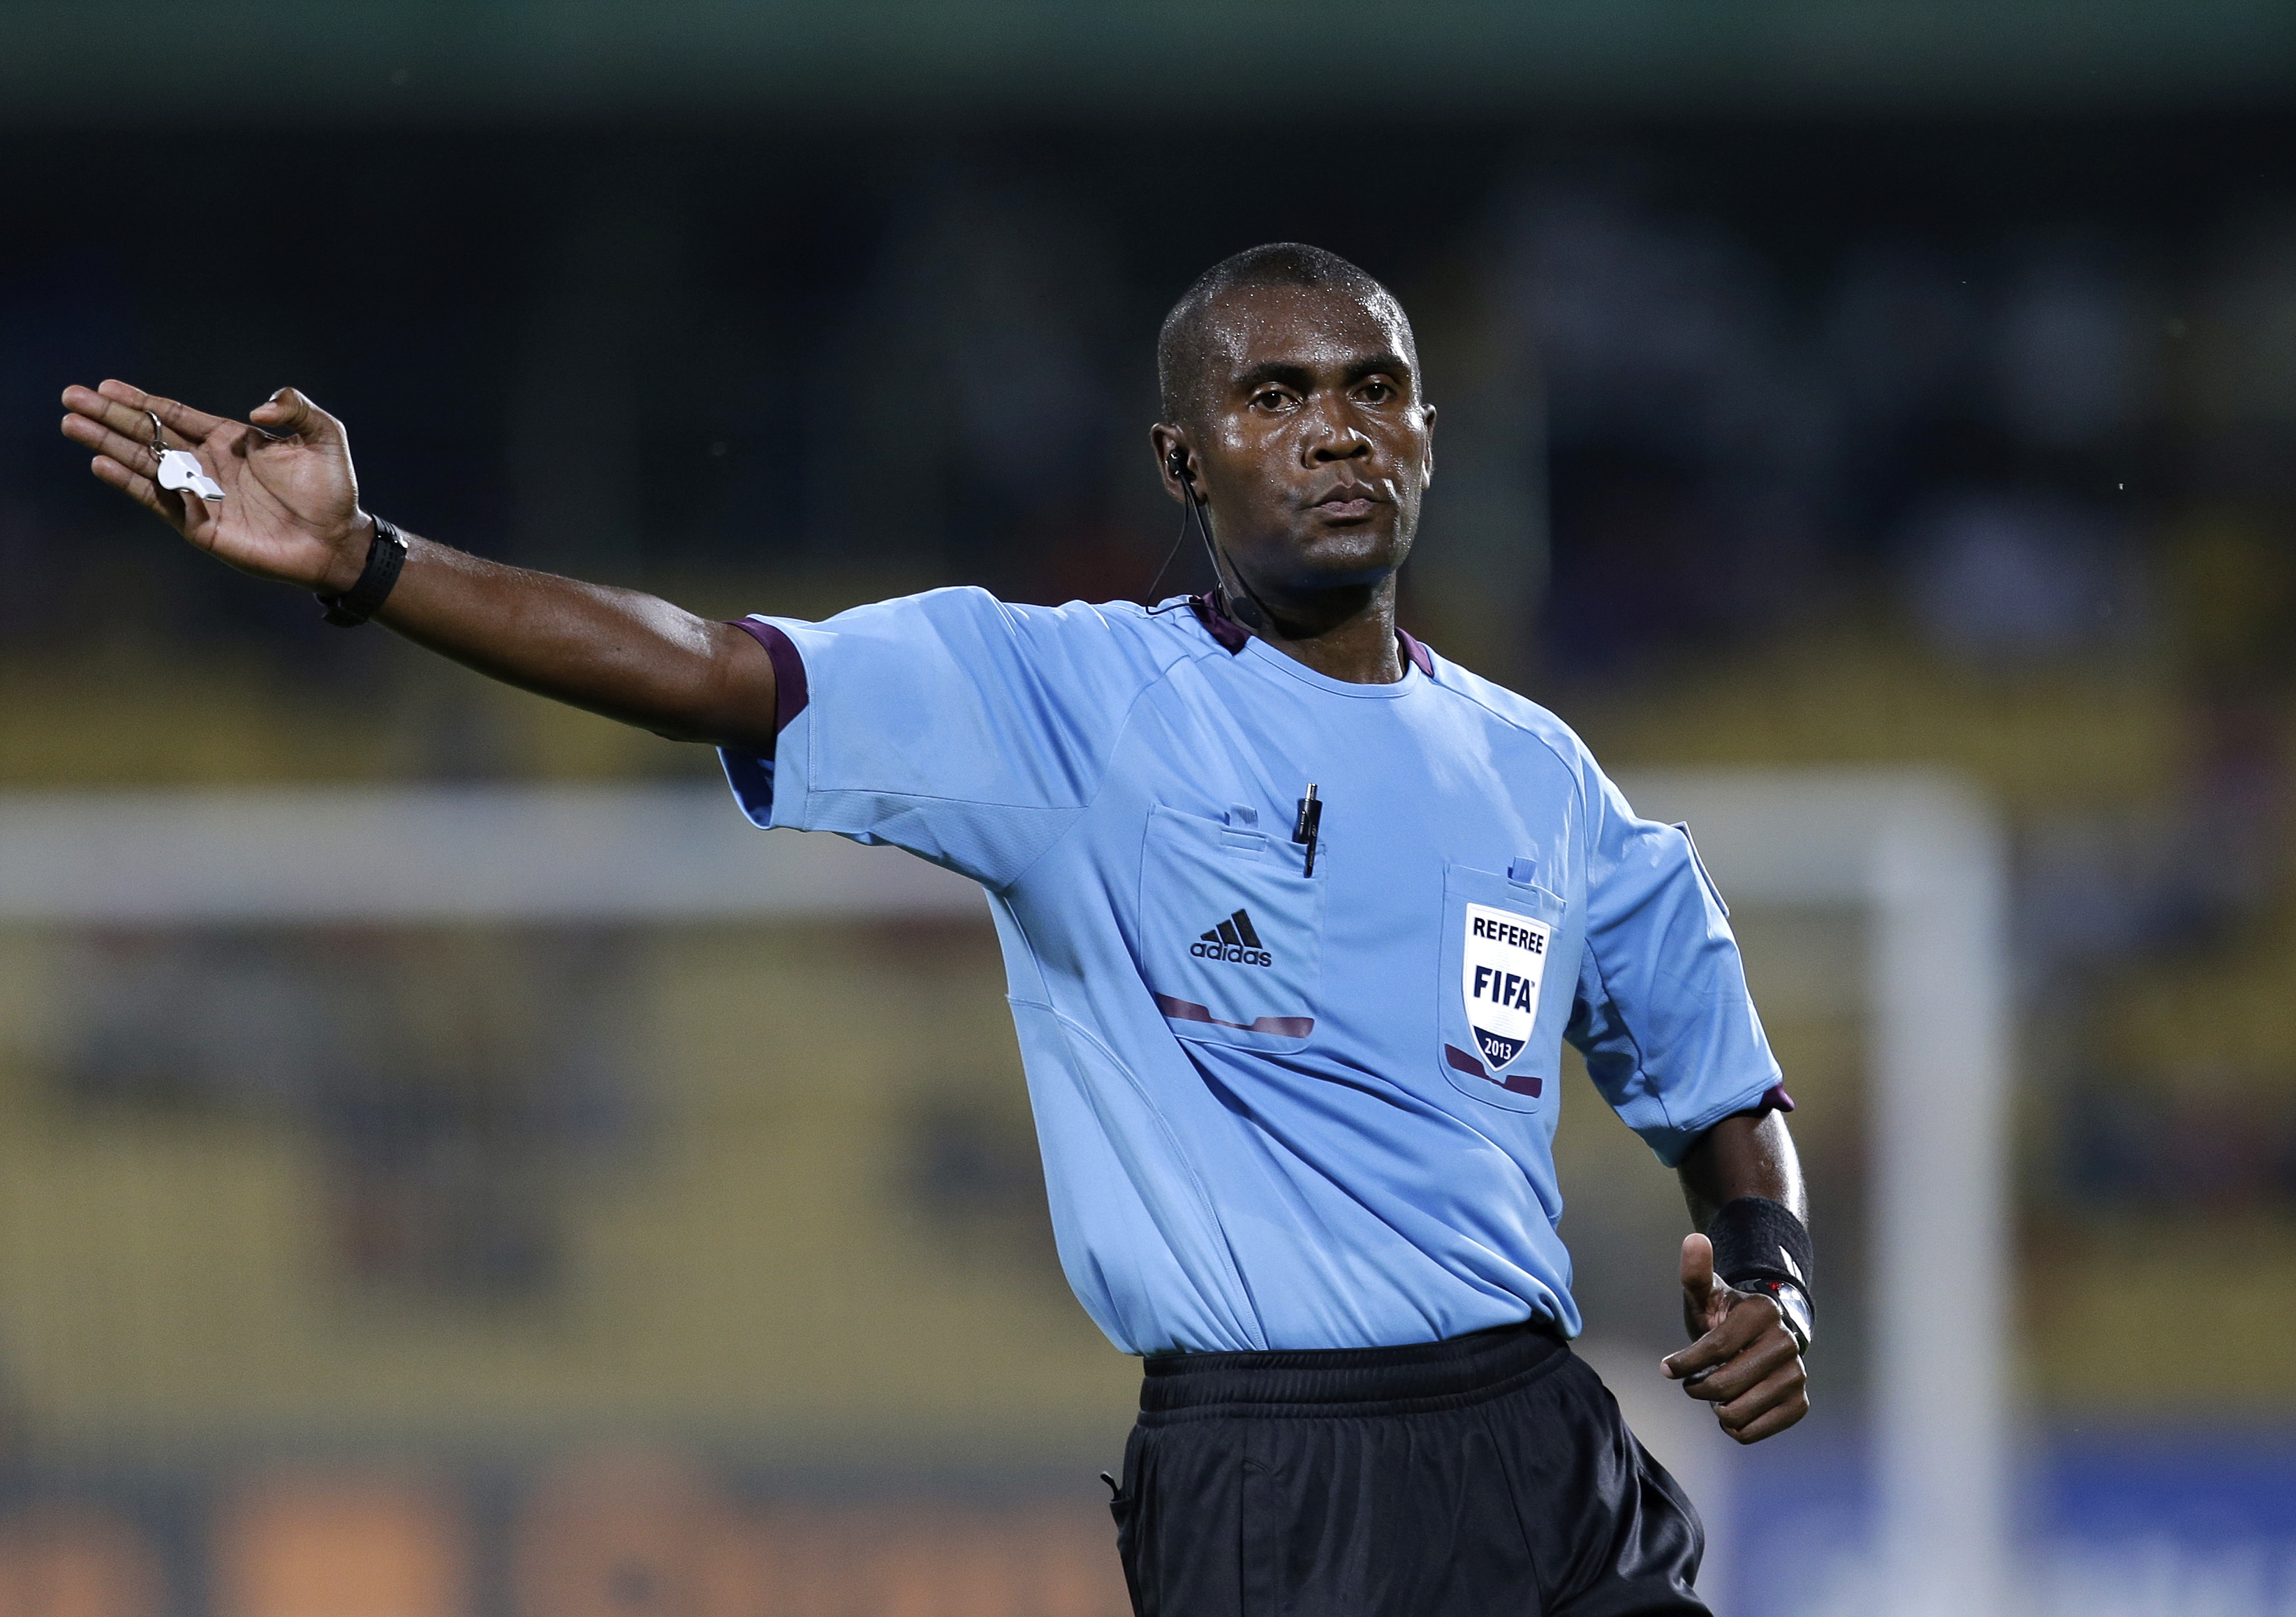 7 'corrupted' African soccer refs banned, 14 suspended